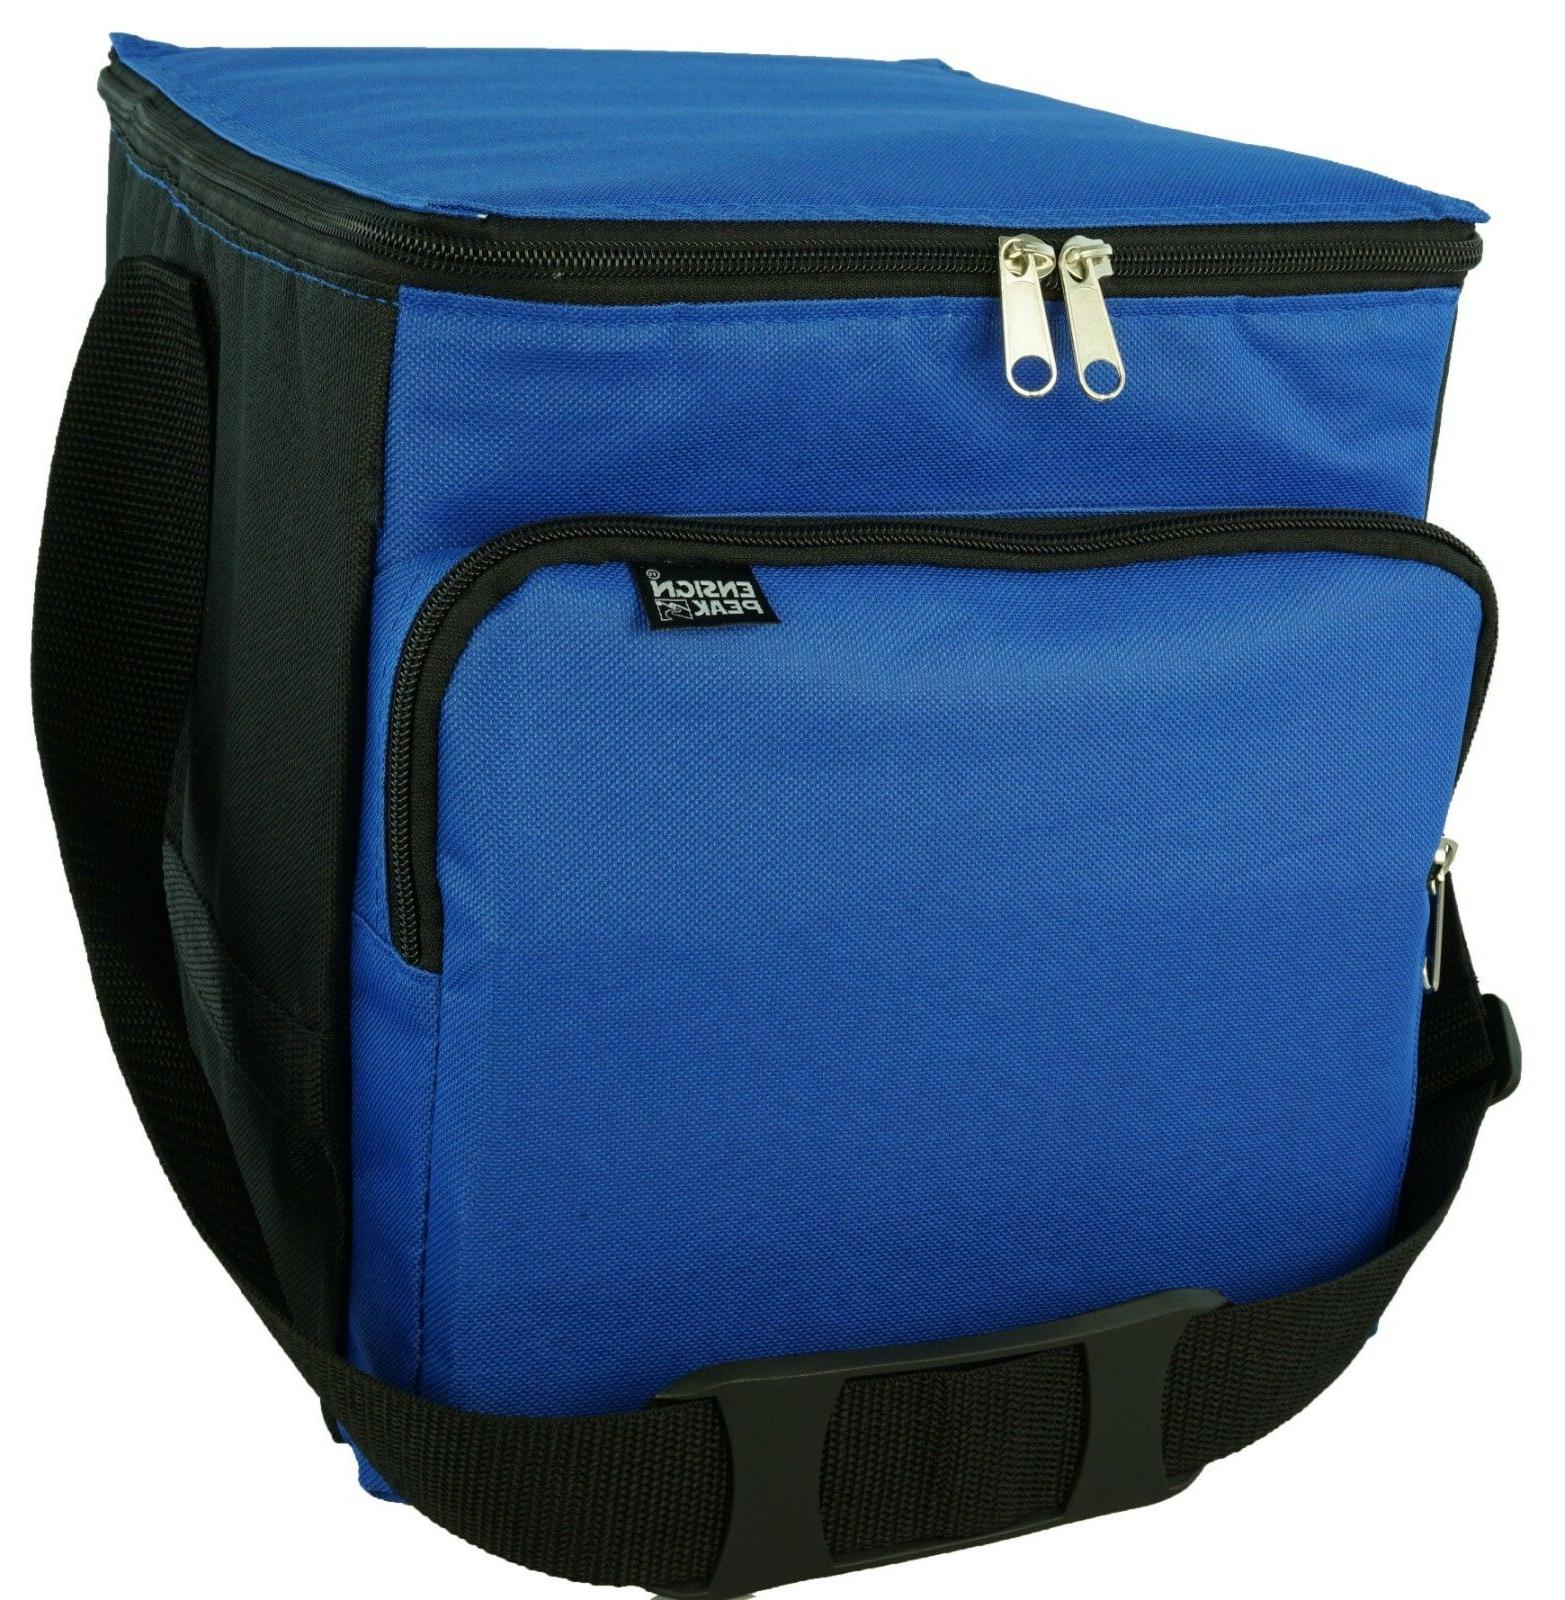 Ensign Insulated Cooler